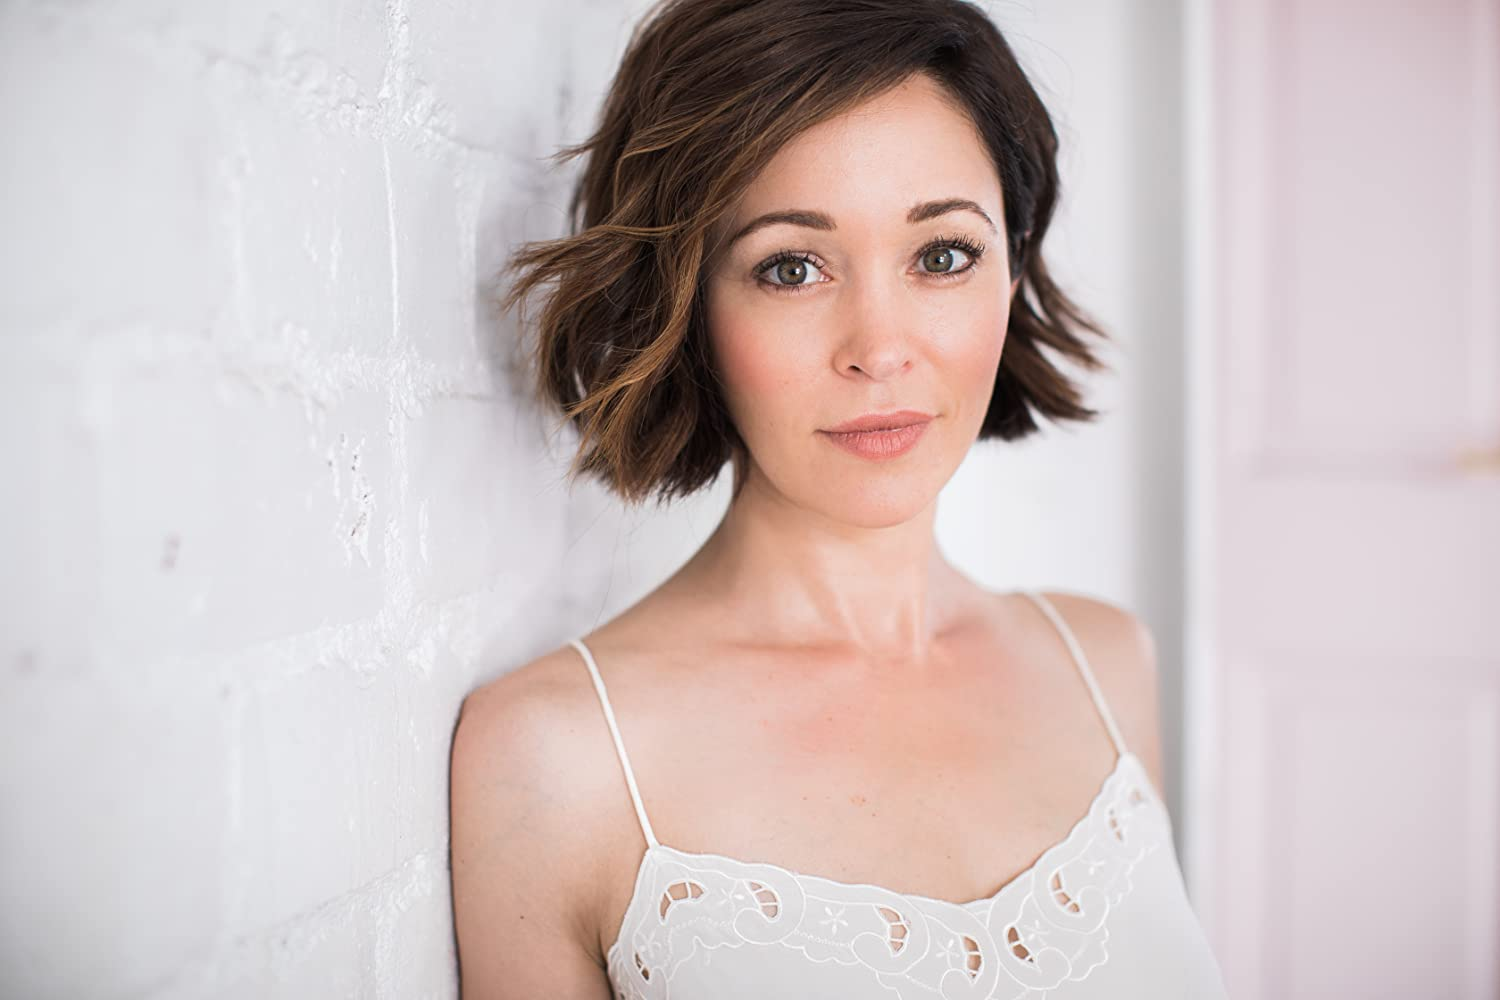 Discussion on this topic: Judith Roberts (actress), autumn-reeser/